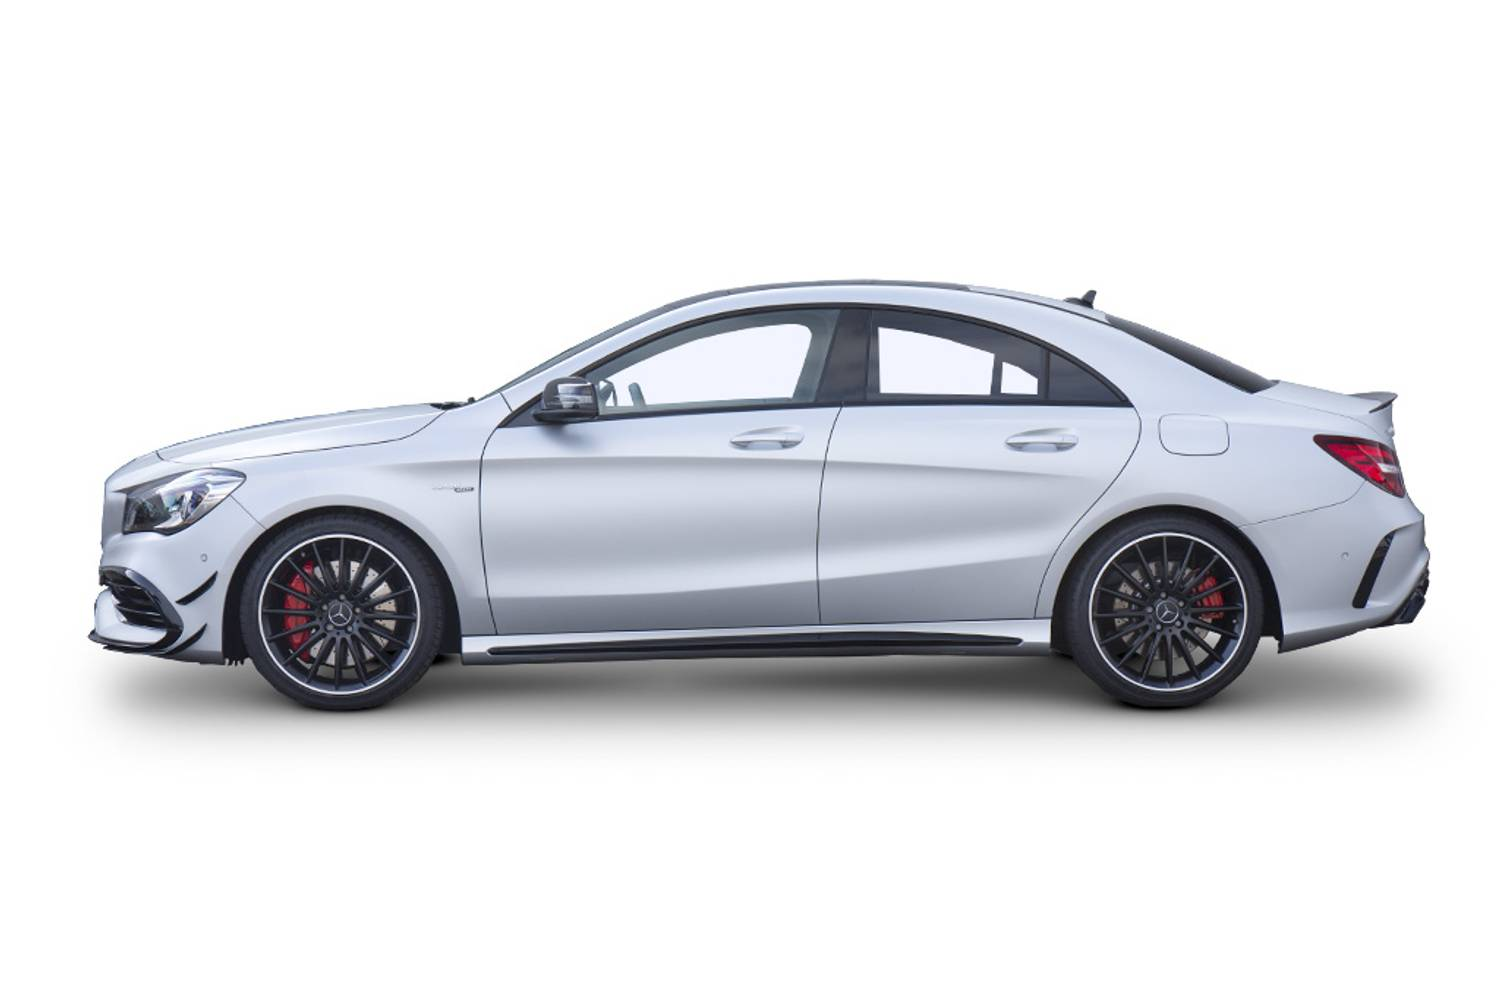 new mercedes benz cla class amg coupe cla 45 4matic 4 door tip auto comand 2016 for sale. Black Bedroom Furniture Sets. Home Design Ideas